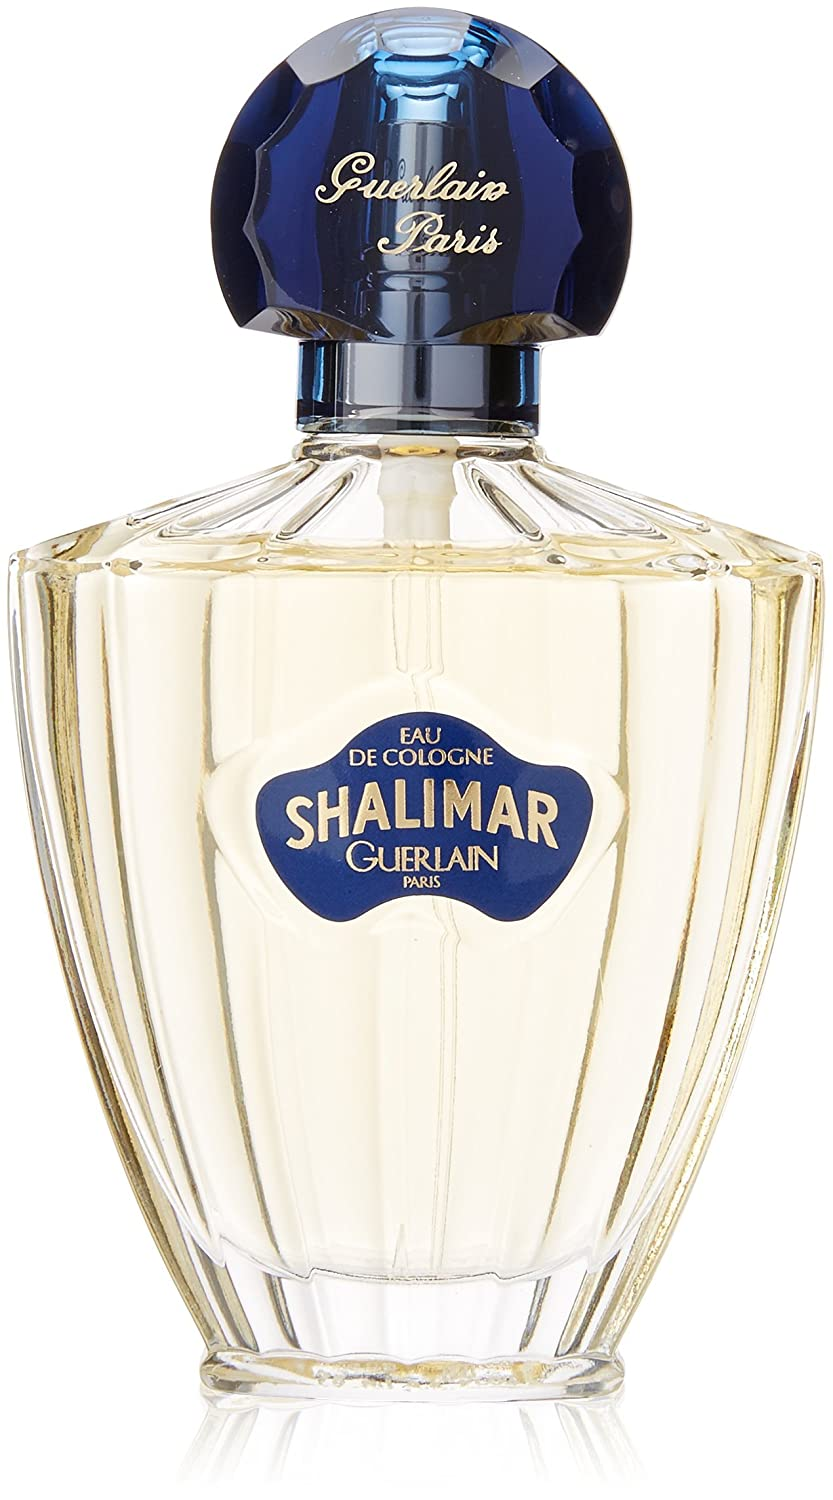 Shalimar By Guerlain For Women. Eau De Cologne Spray 2.5 Oz. 99 Perfumes CA Dropship 100870